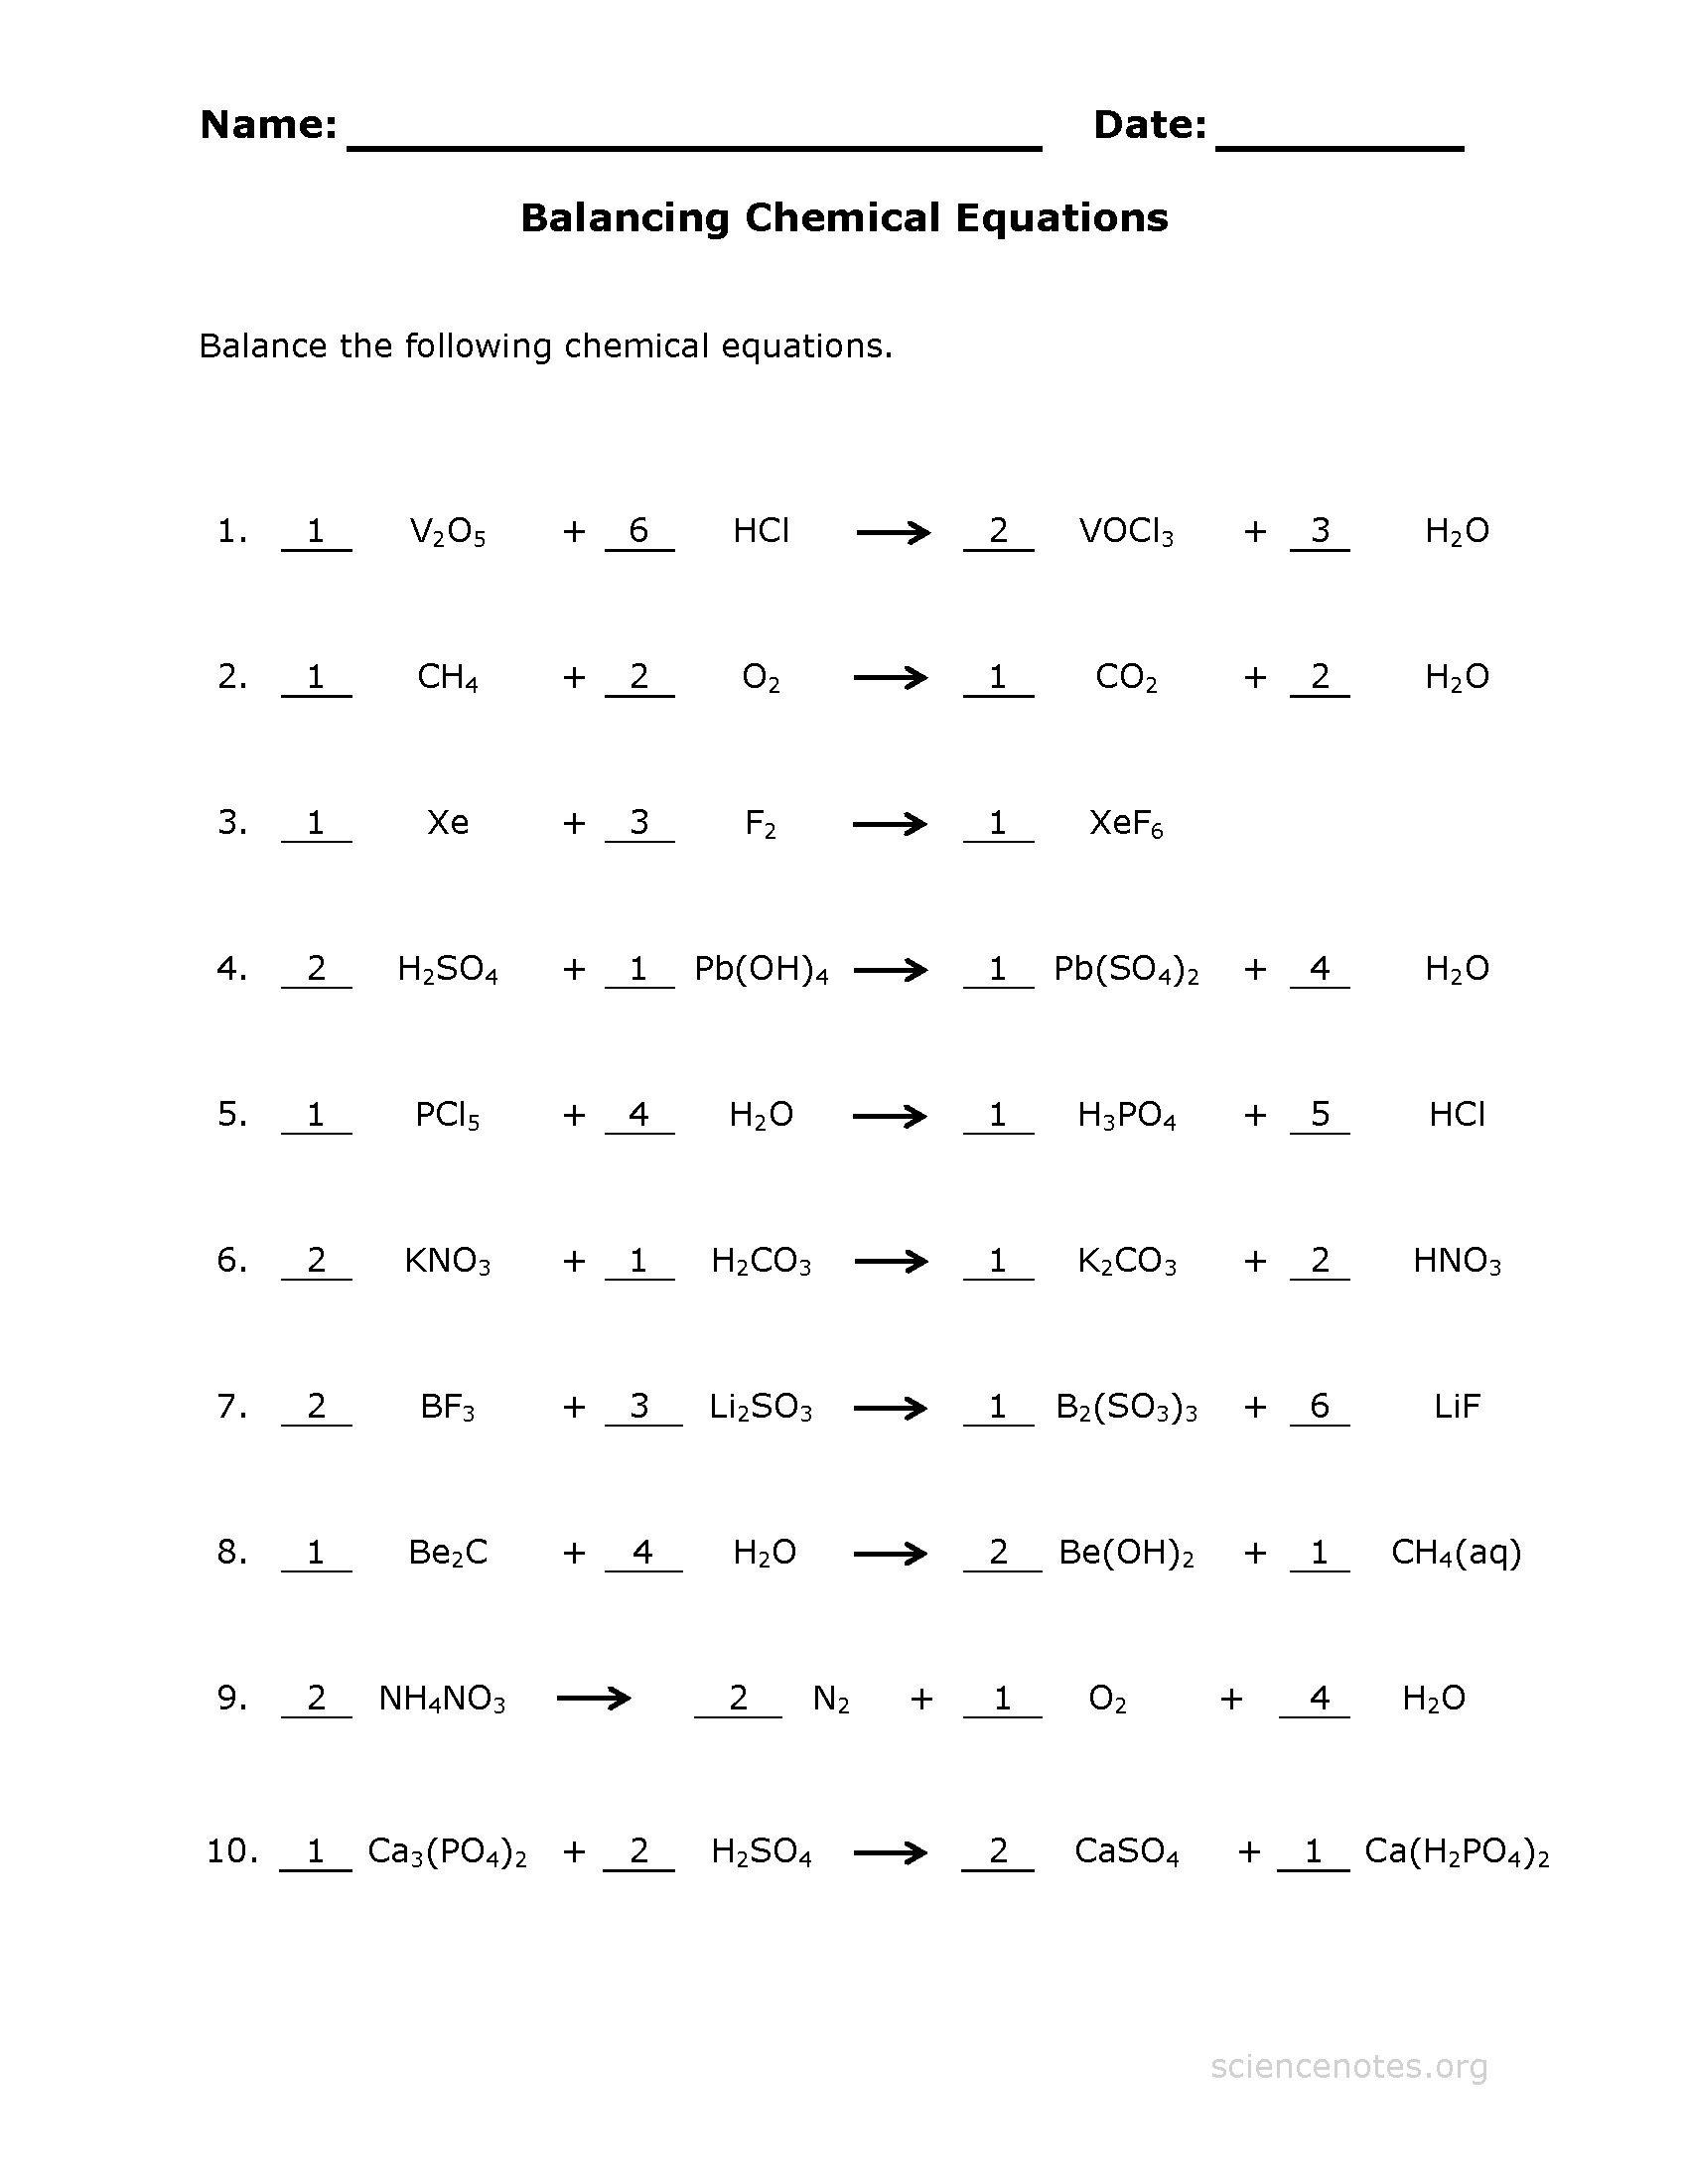 Balancing Chemical Equations Worksheet Part 1